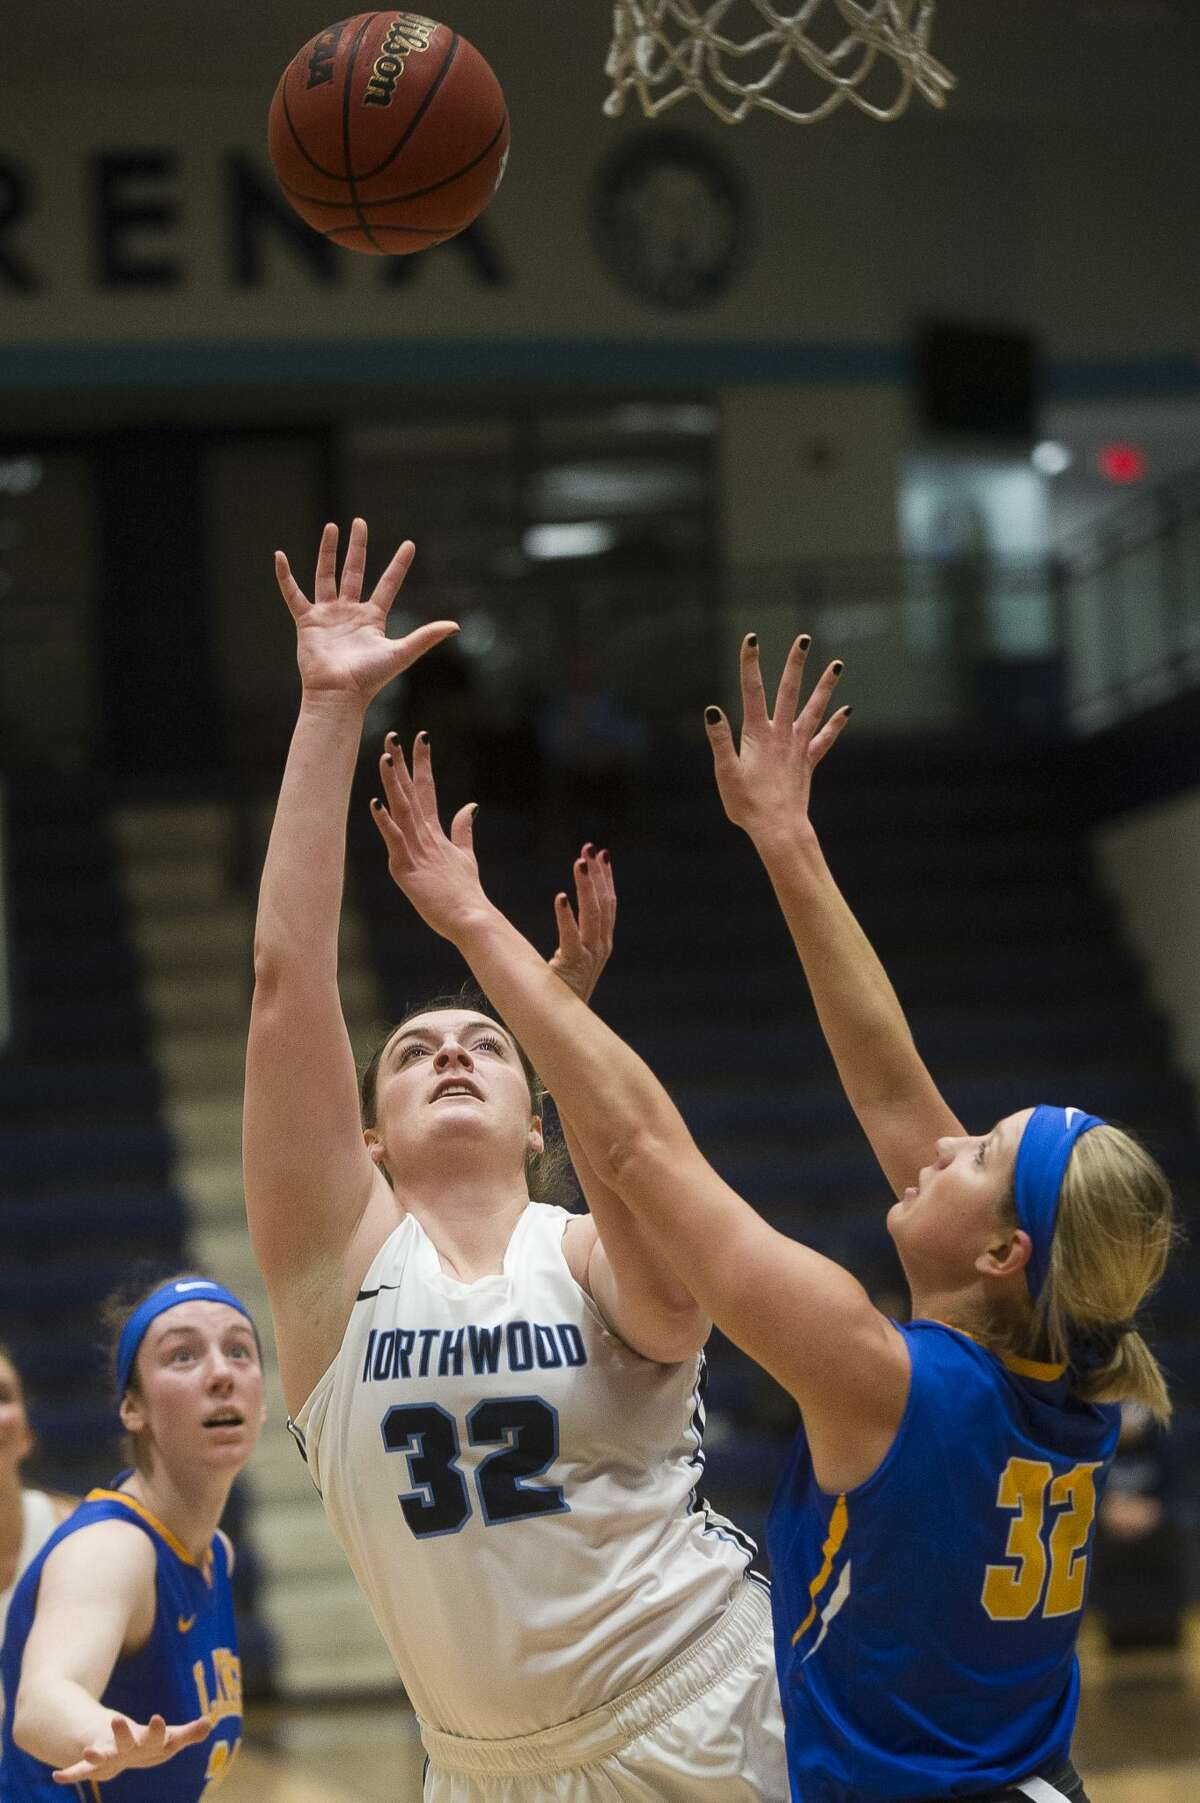 Northwood's Taylor Craymer takes a shot during the Timberwolves' game against Lake Superior State on Saturday, Dec. 9, 2017 at Northwood University. (Katy Kildee/kkildee@mdn.net)